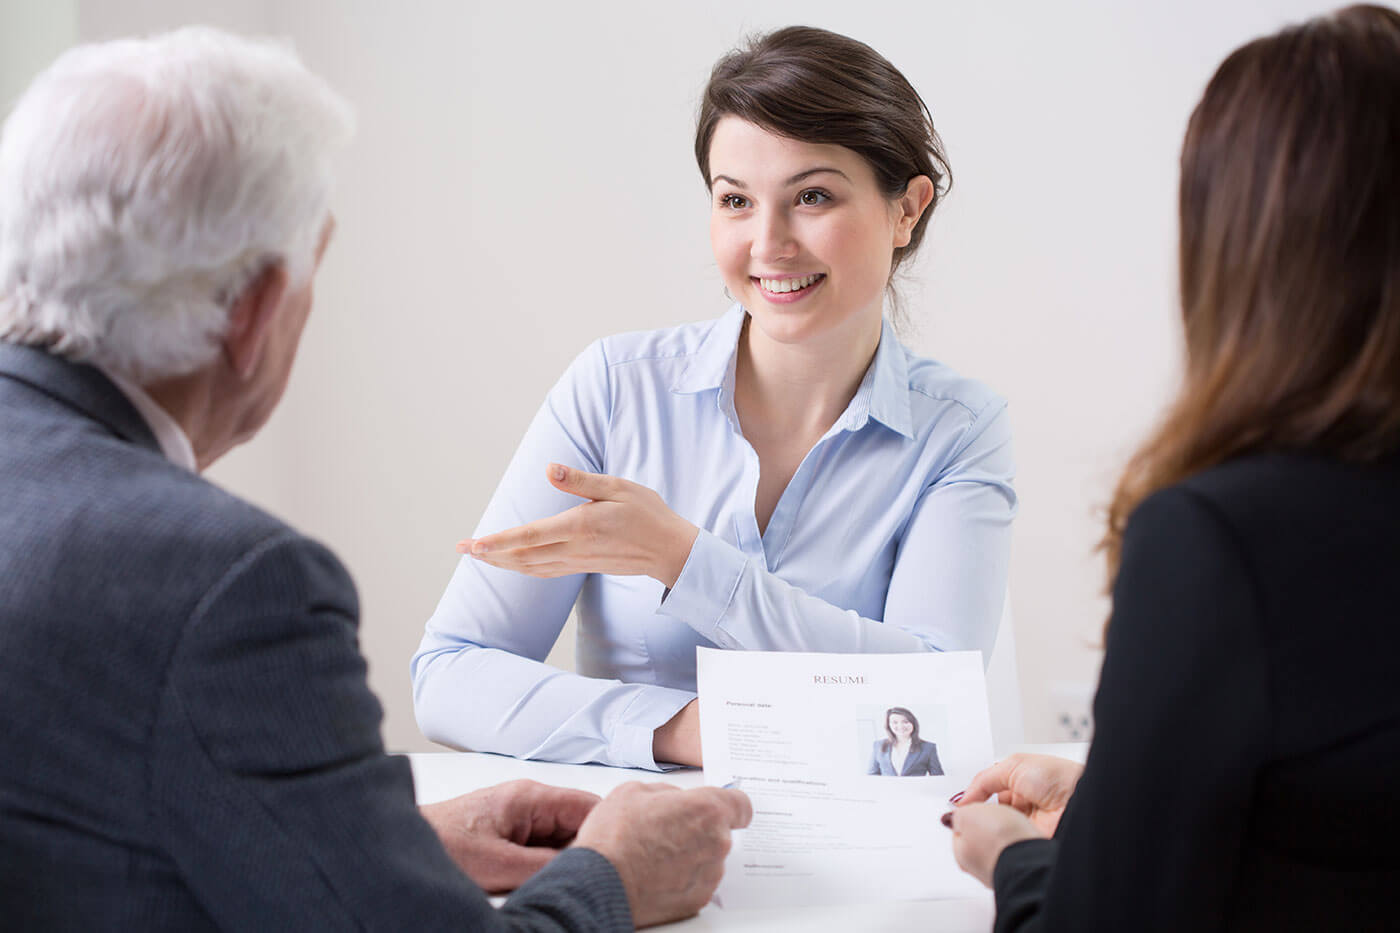 Recent Accounting Graduate Interviewing